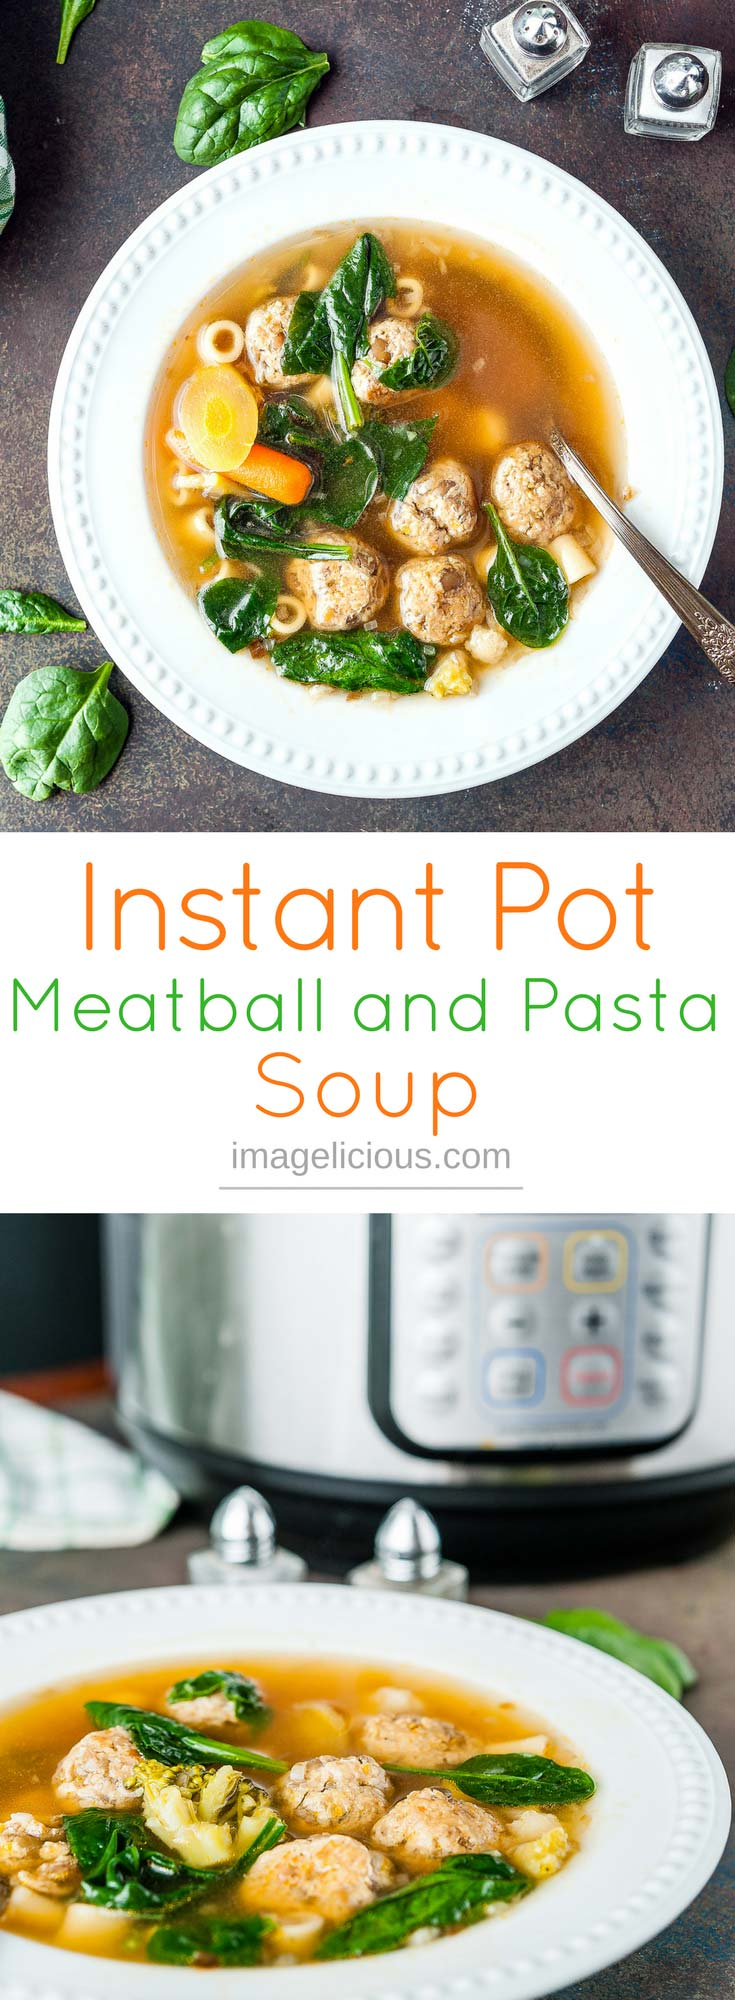 This Instant Pot Meatball and Pasta Soup is flavourful, light, yet filling. Juicy meatballs, vegetables, fresh spinach, and perfectly cooked pasta are suspended in beautiful and clear broth. Delicious and satisfying soup any time of the year made easily in your pressure cooker | imagelicious.com #instantpot #pressurecooker #soup #meatballs #pasta